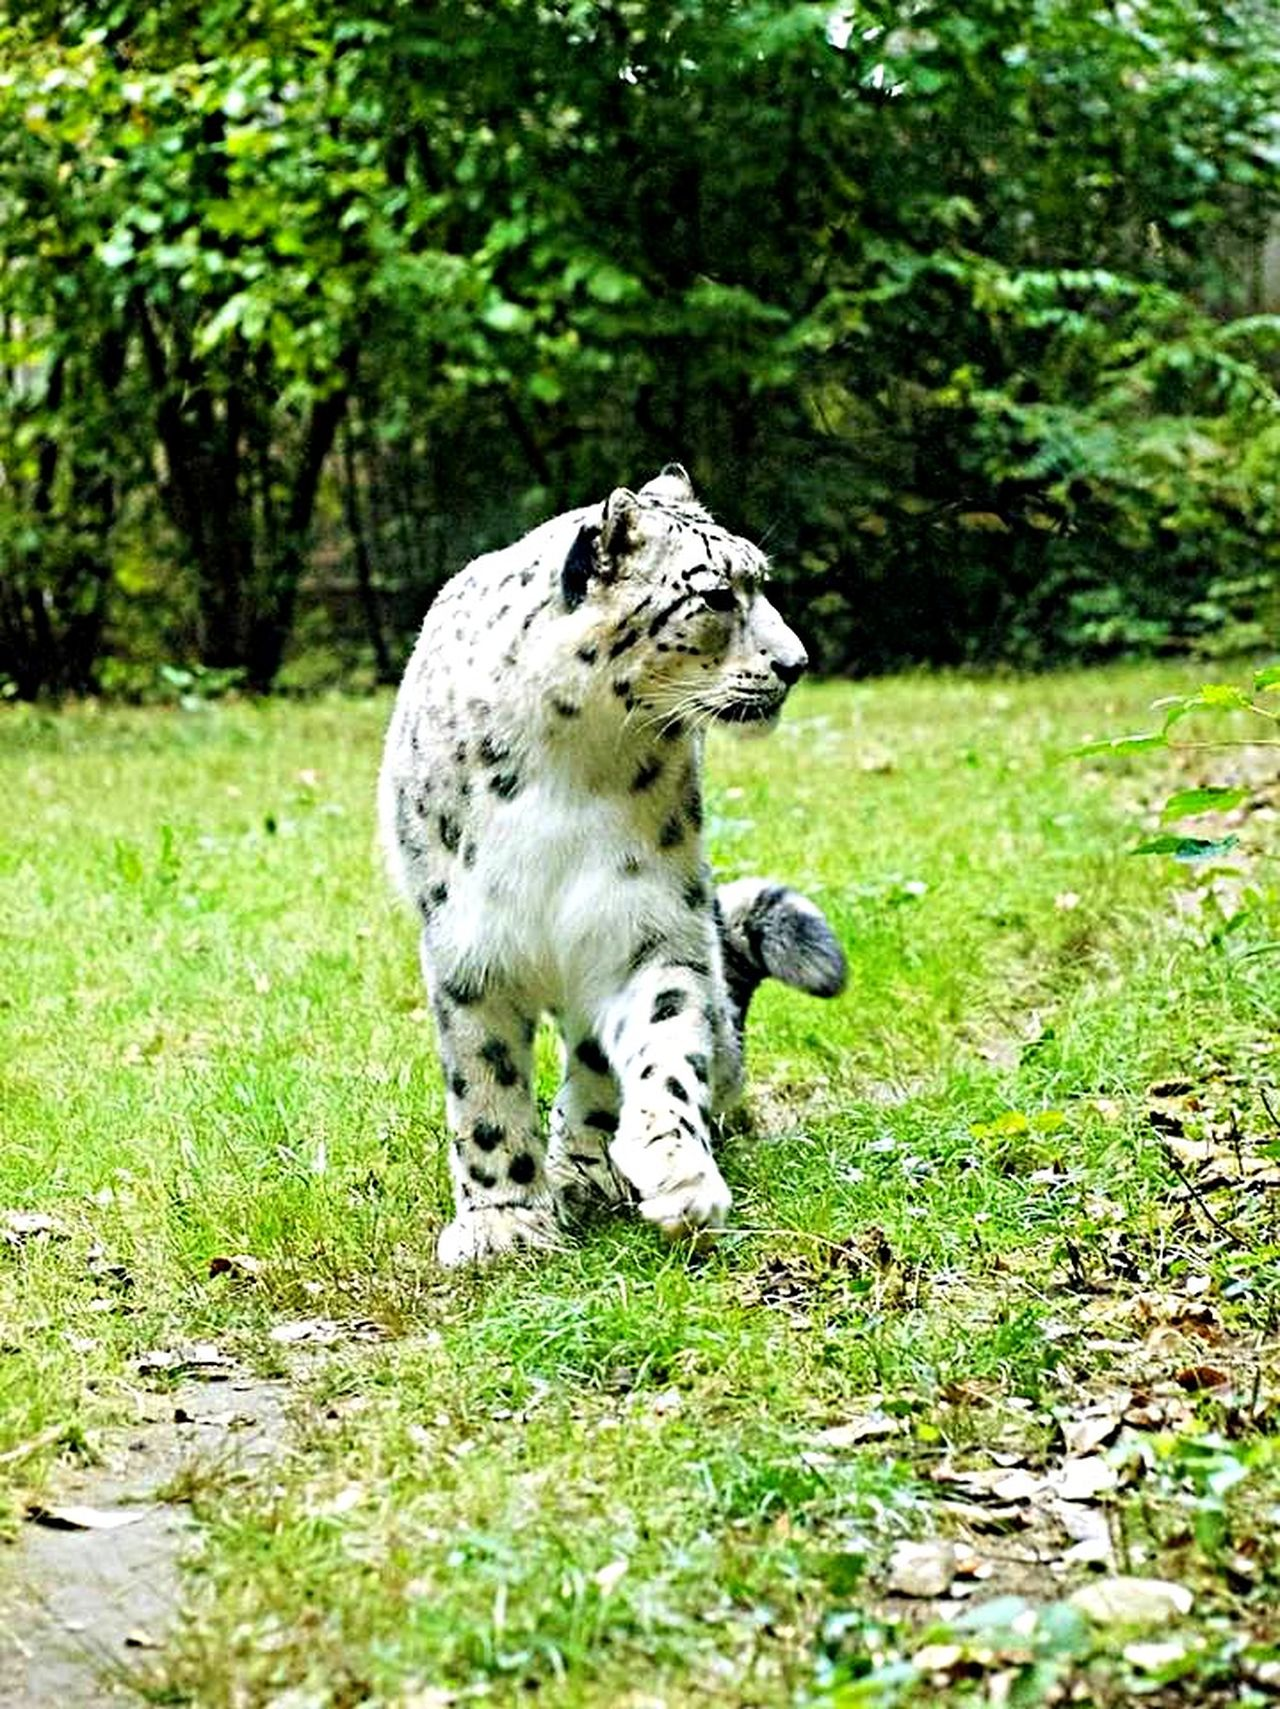 The snow leopard is absolutely magnificent. It represents really what endangered species are all about. Leopard Animals Animal Animal_collection Nature Nature_collection EyeEm Nature Lover Taking Photos EyeEm Best Shots From My Point Of View